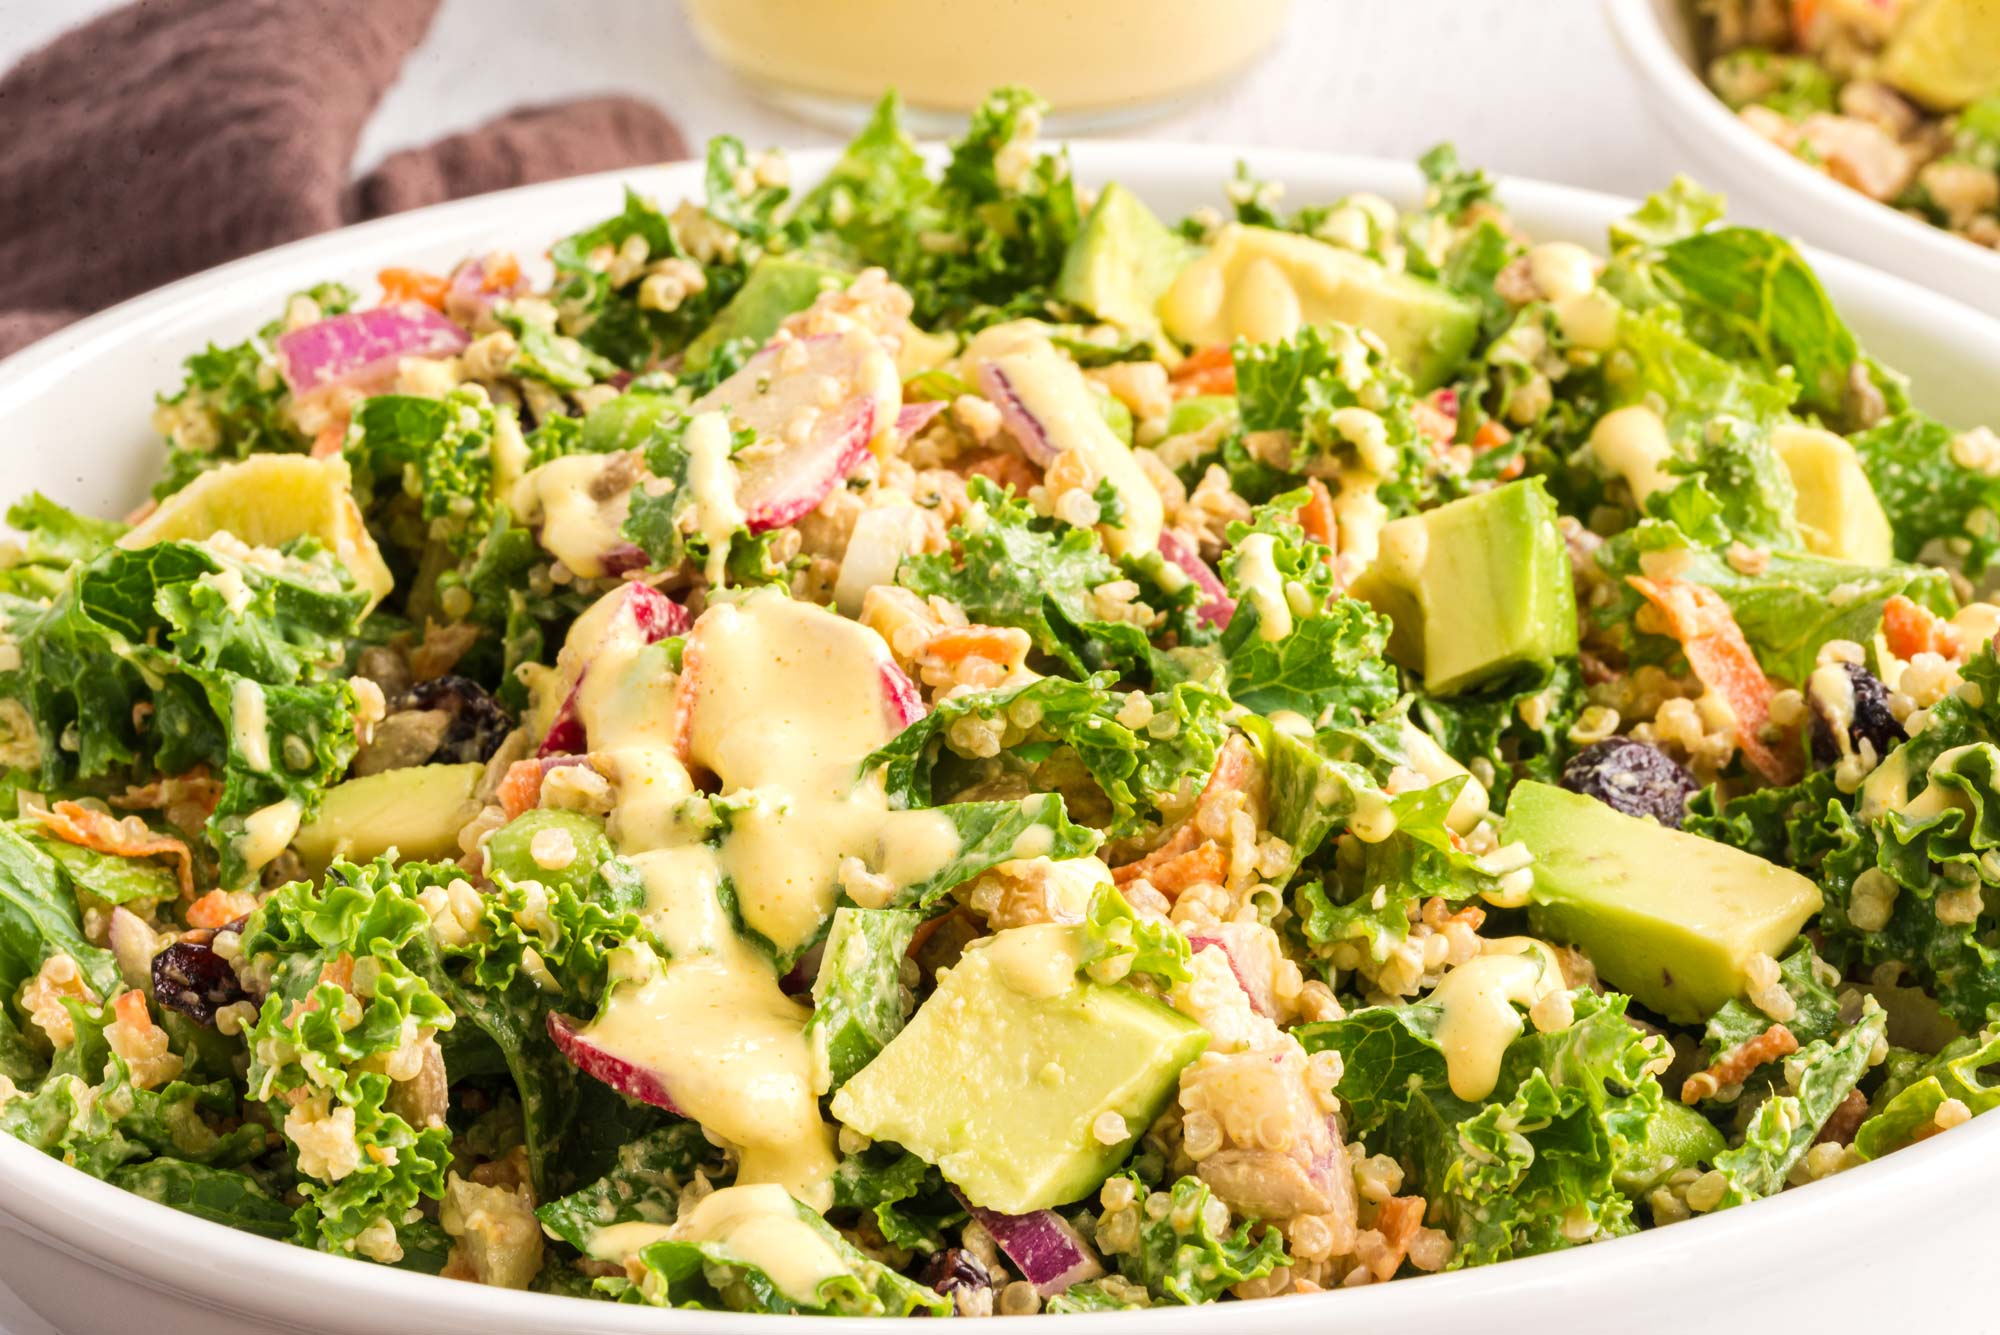 Osteoporosis diet: 12 ingredient superfood salad